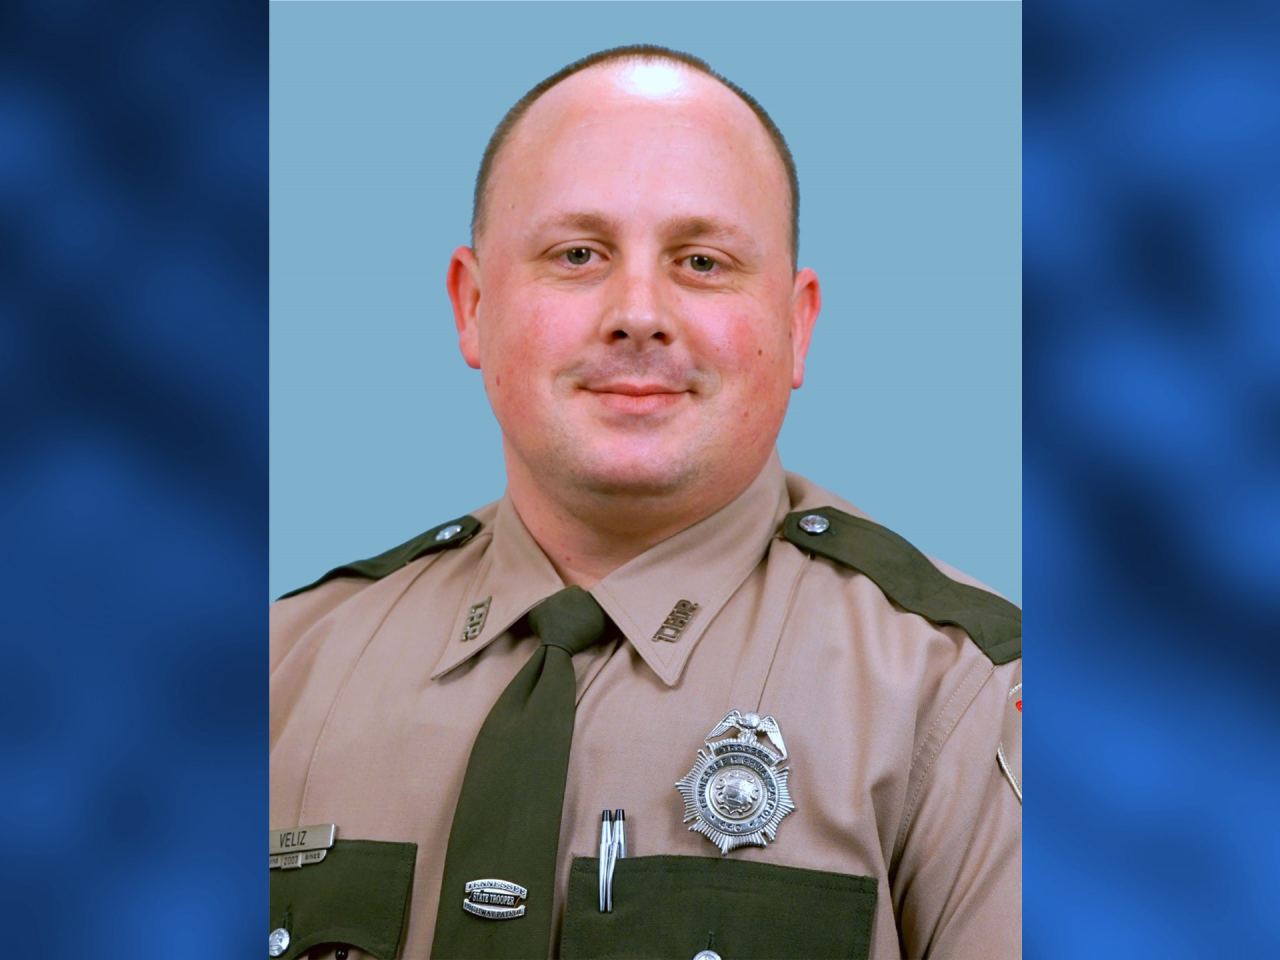 thp officer arrested.png